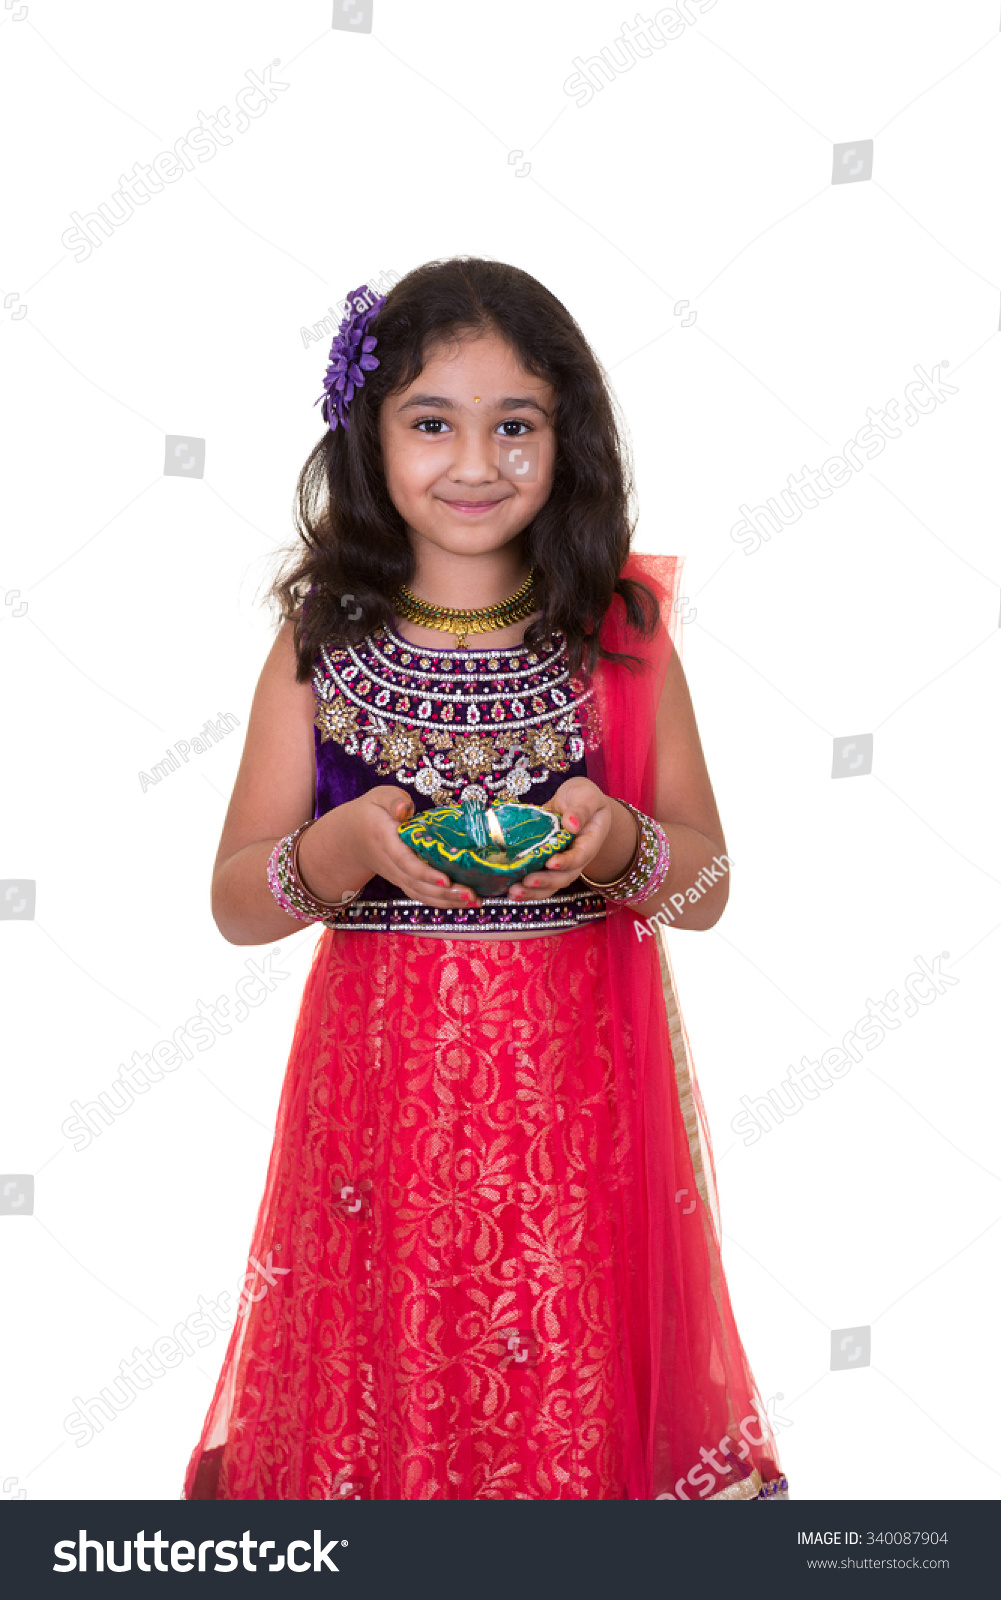 Portrait Little Girl Holding Lamp Isolated Stock Photo 340087904 ... for Girl Holding Lamp  555kxo